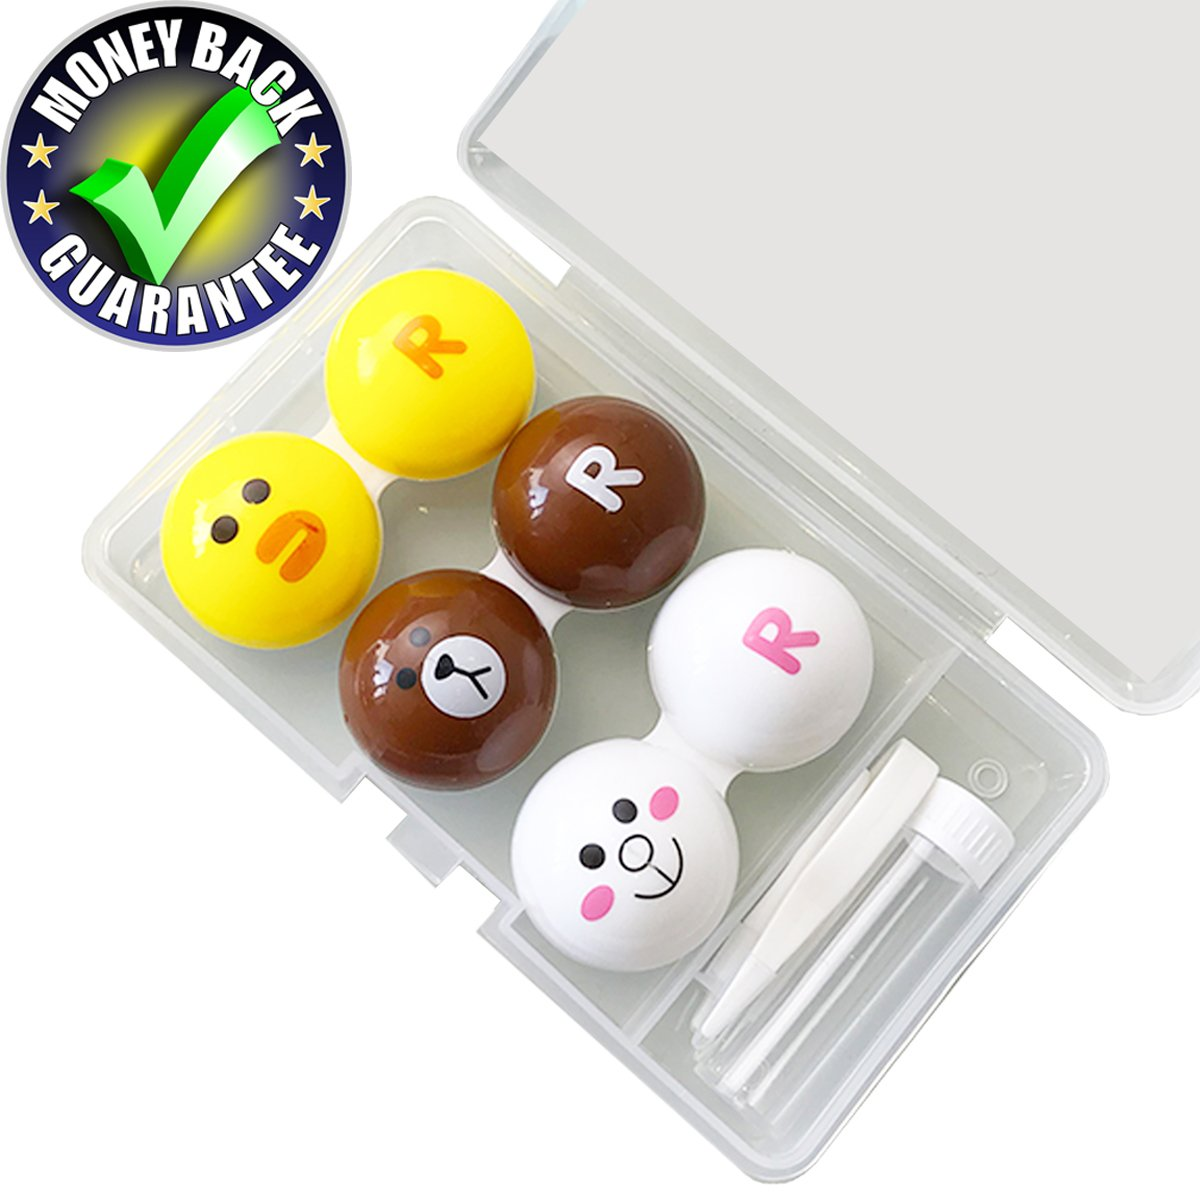 Contact Lens Case Cute Animal Contact Lens Case Shape Rabbit, Chick, Bear Left And Right Change Every Month Contact Lens Case 3-Pack No Leak Dust Proof With Care Solution Container, Twzeers, Outer Case Sunflower Innovative Store